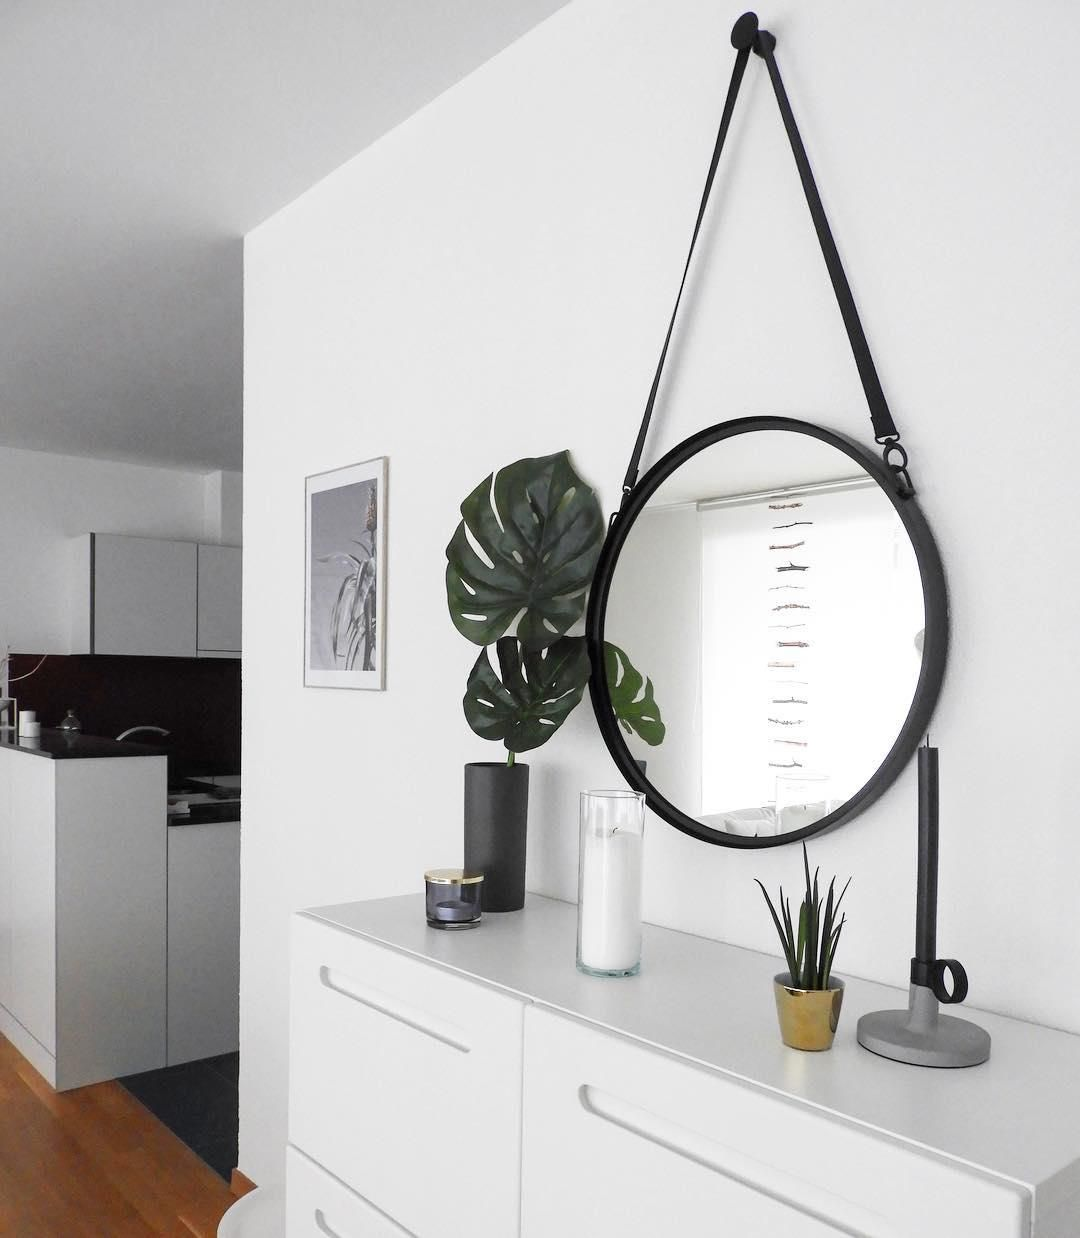 Spiegel Dekorieren wandspiegel liz hippy room furniture ideas and mirror mirror